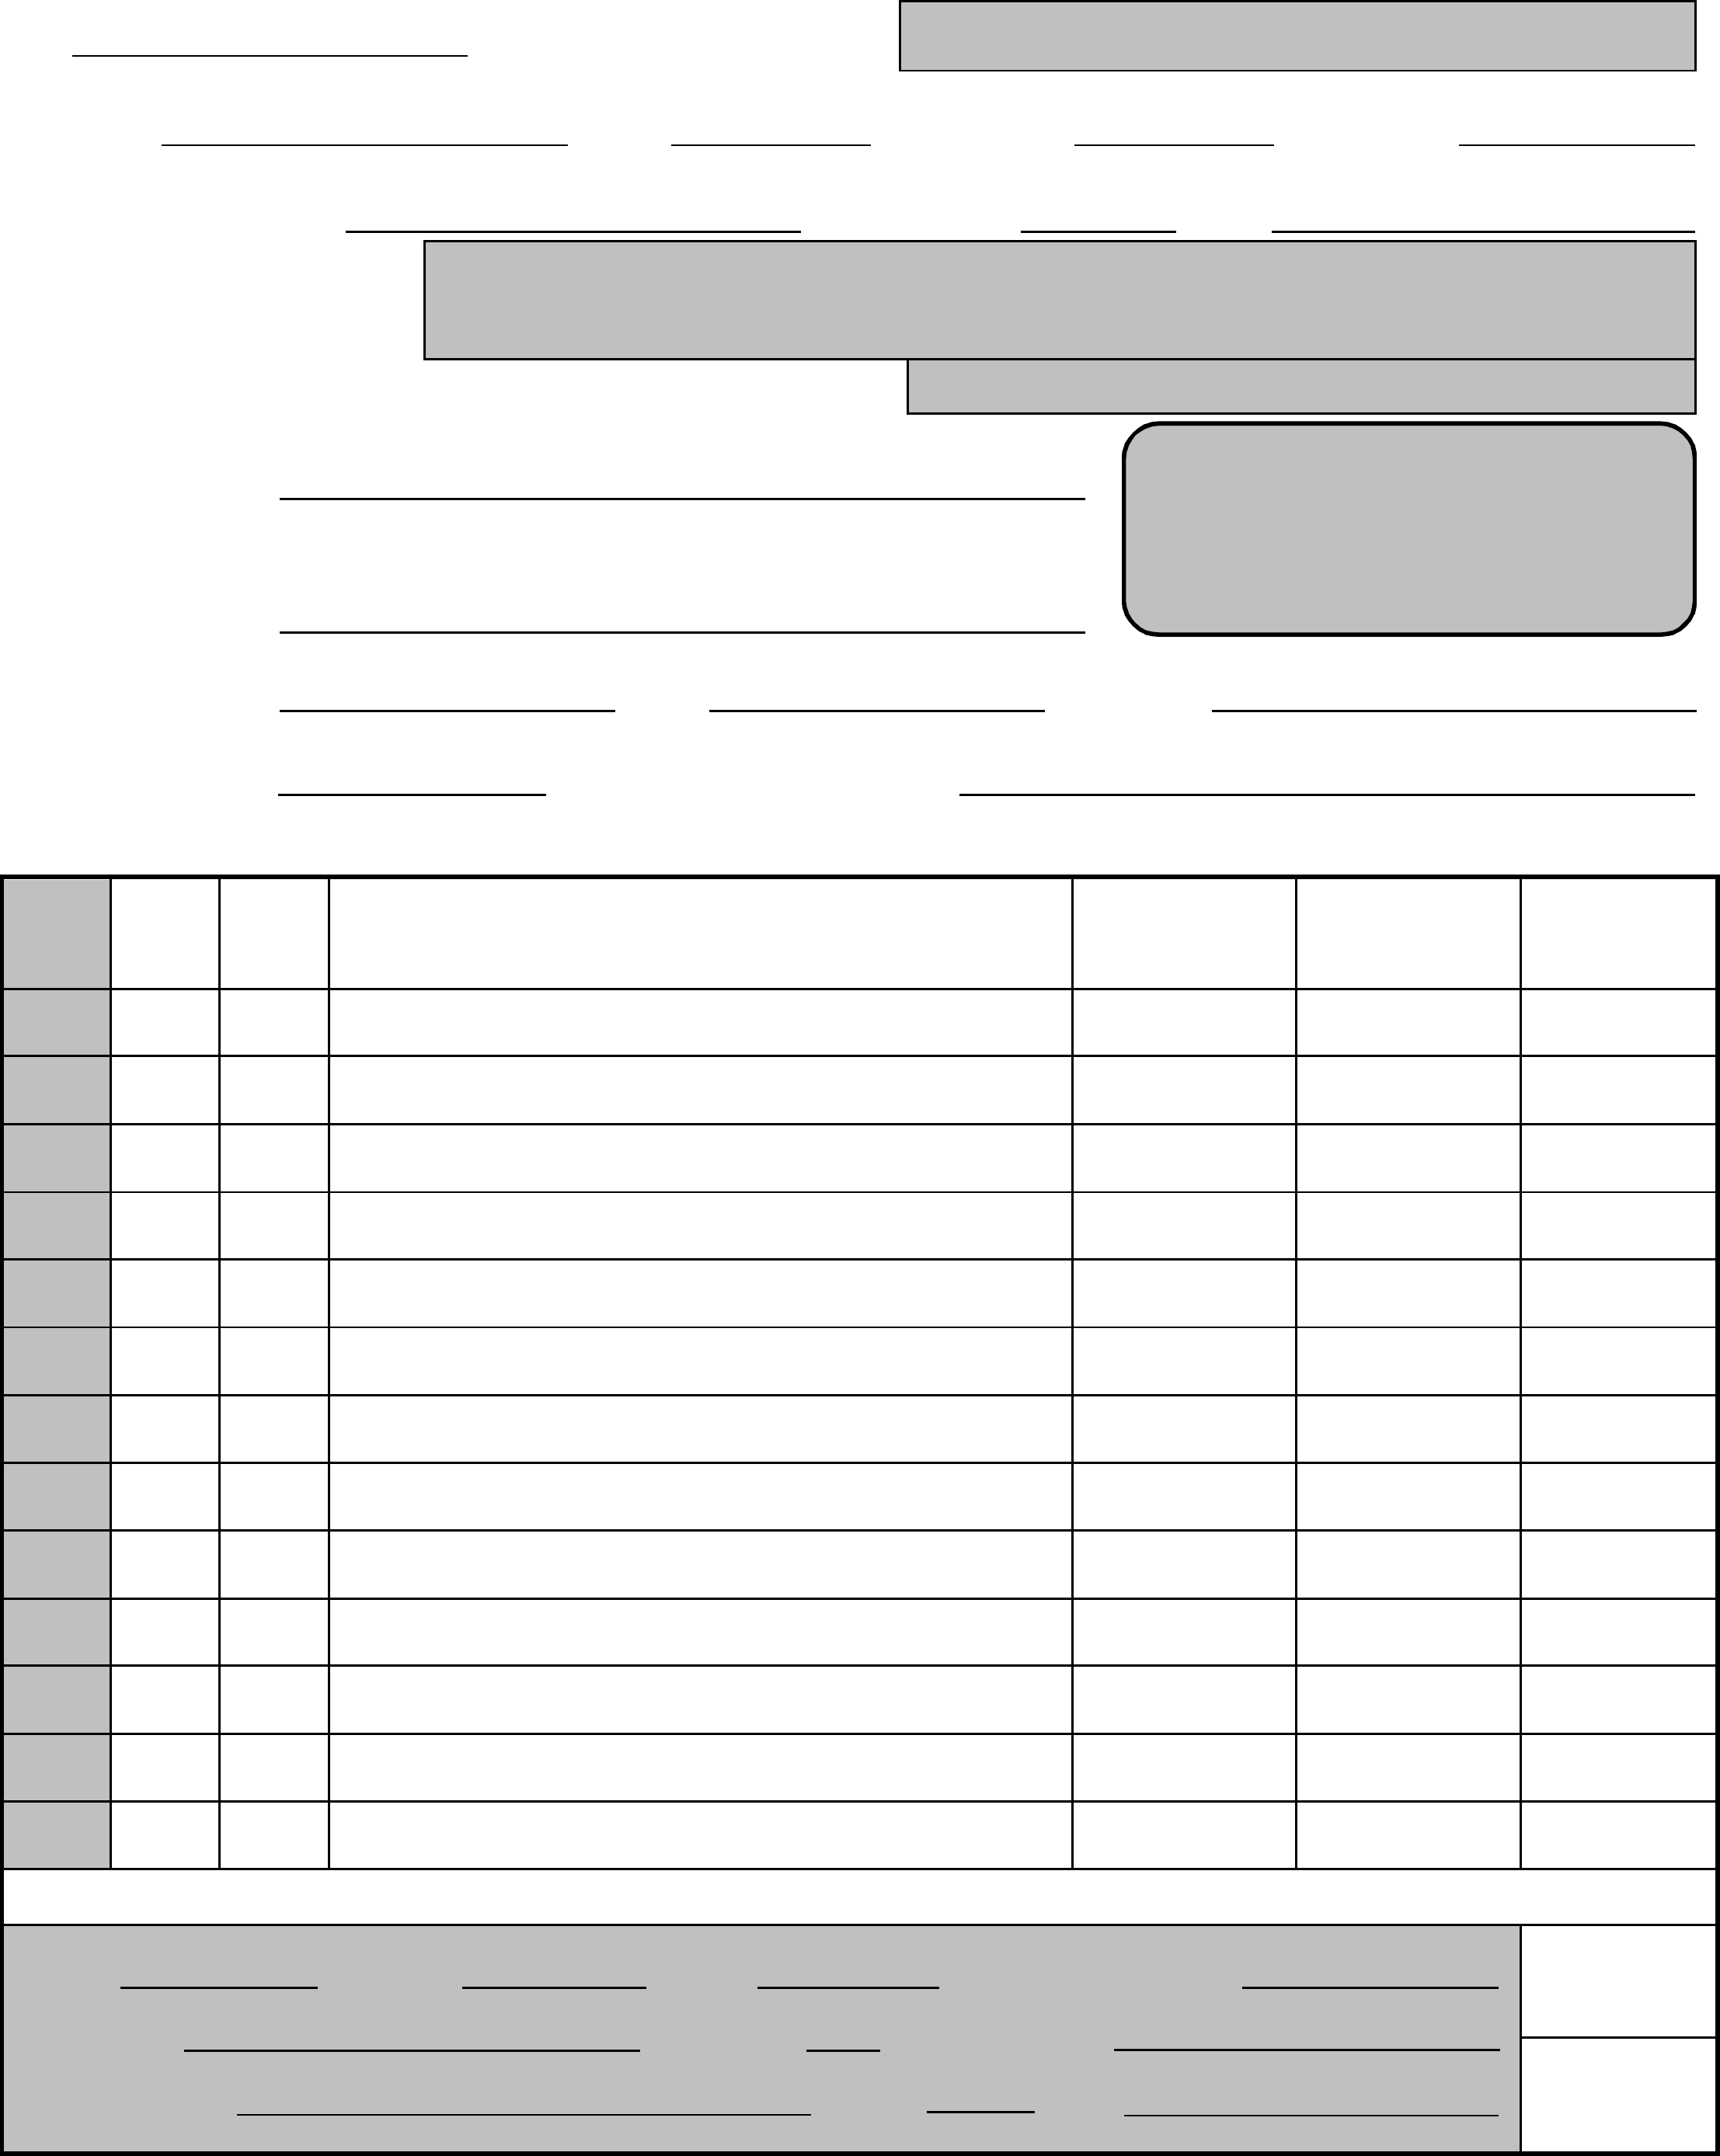 purchase order request form sample free download